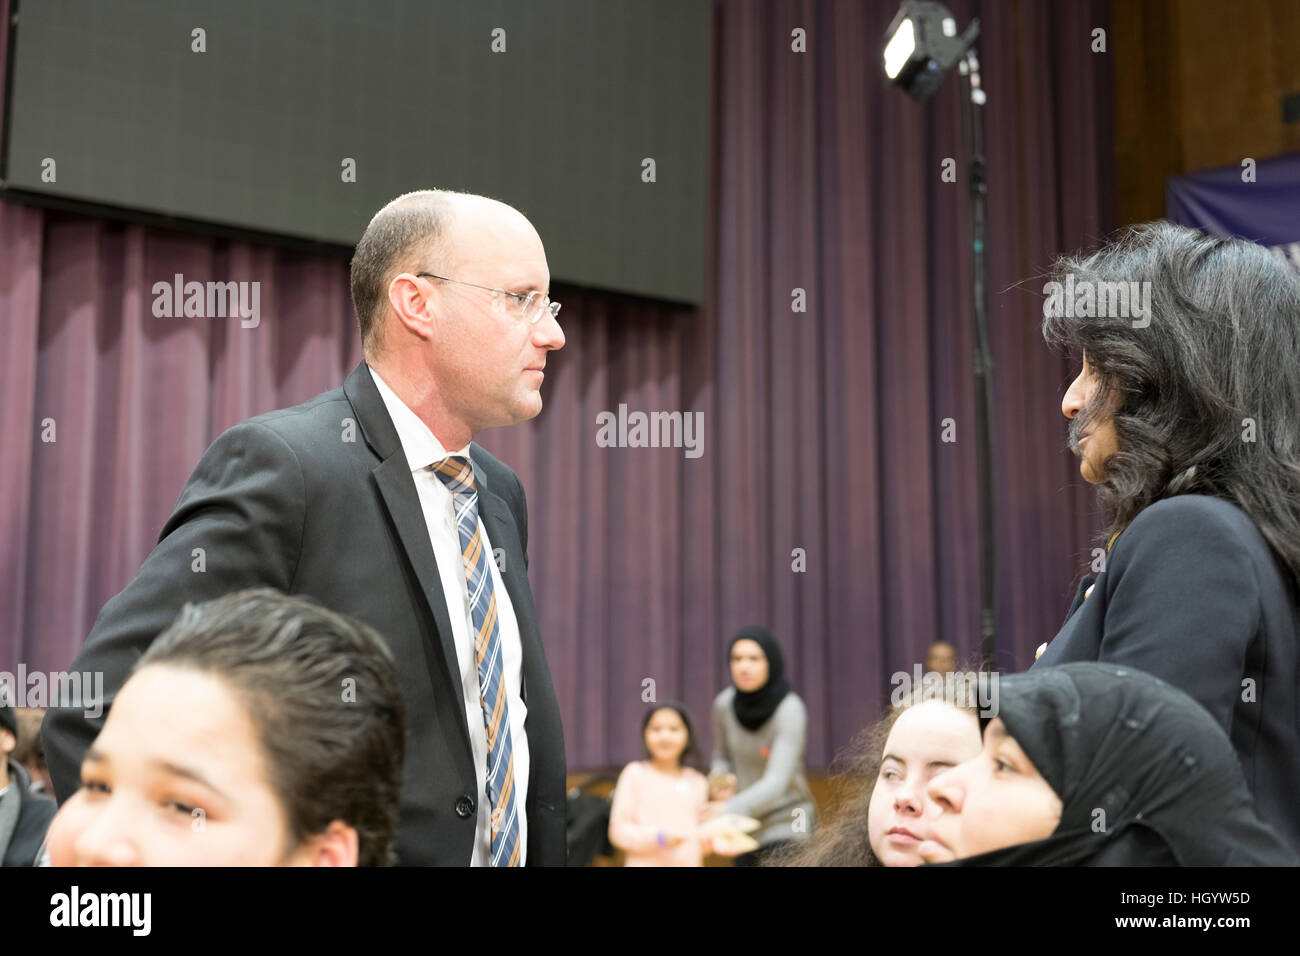 London, Ontario, Canada, 13th January, 2017. Matt Brown, mayor of London, Ontario, talks to members of the audience - Stock Image